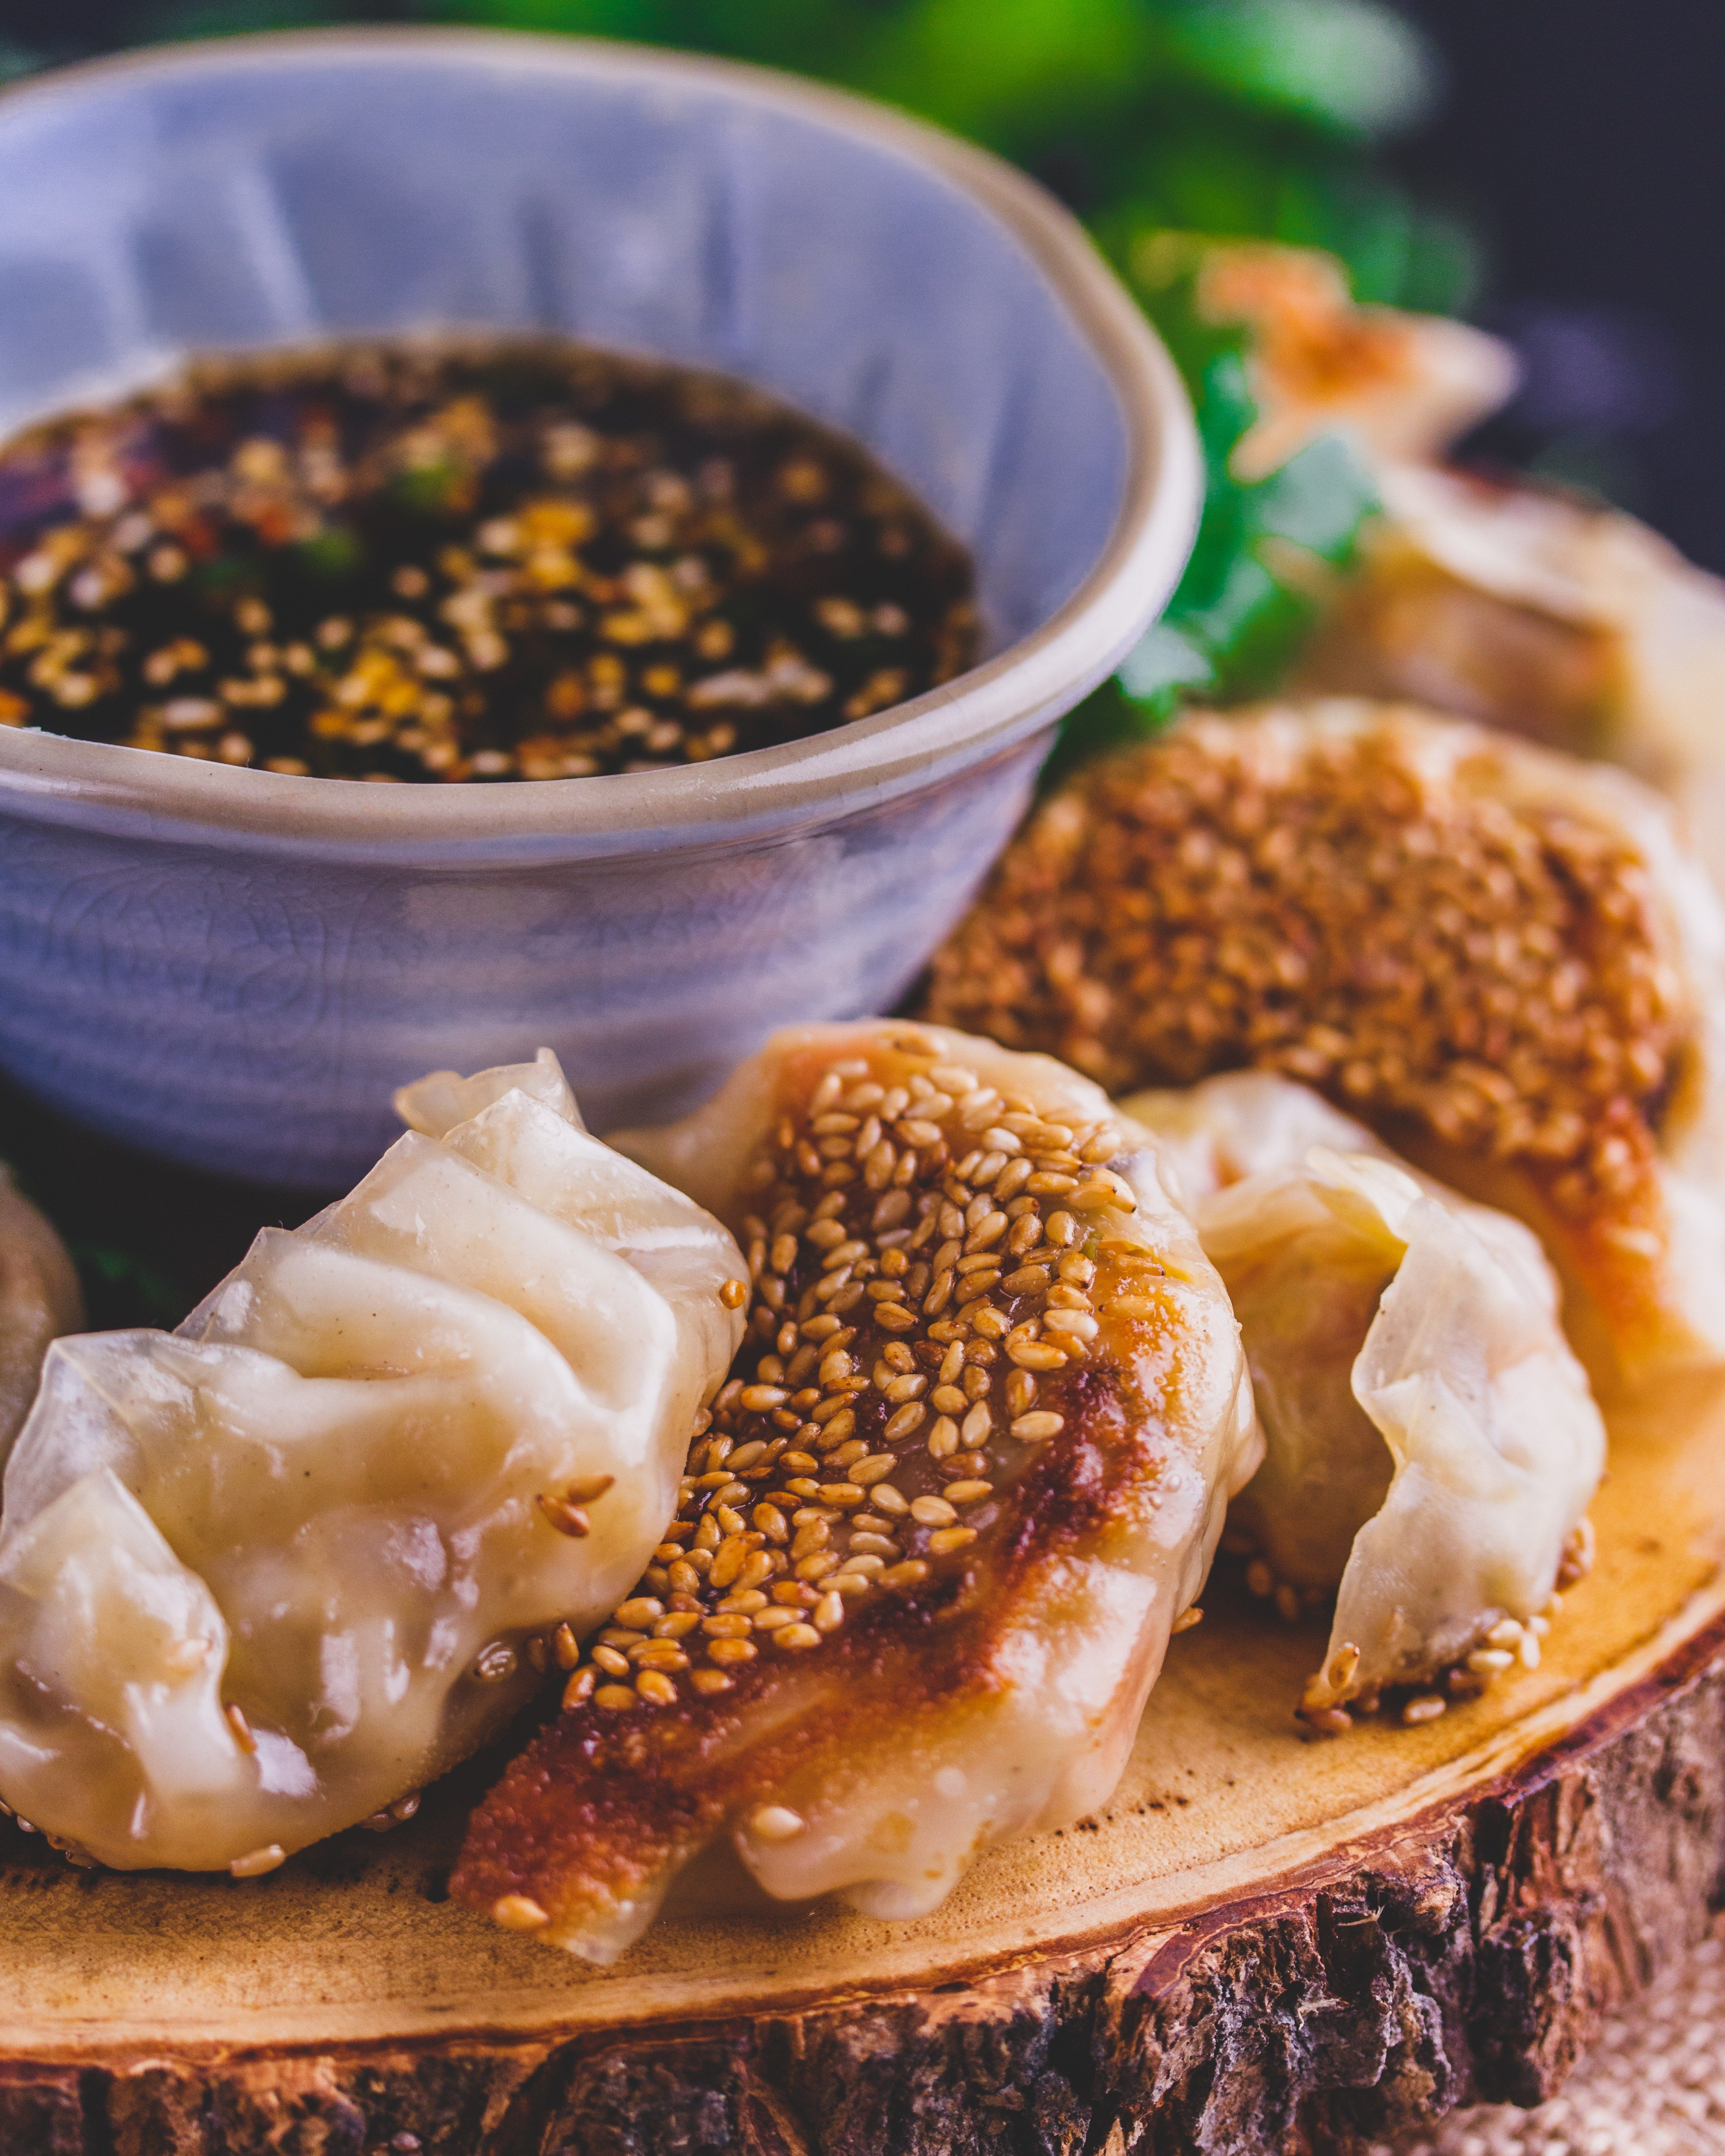 Vegan Gyoza Pan Fried Vegetable Dumplings